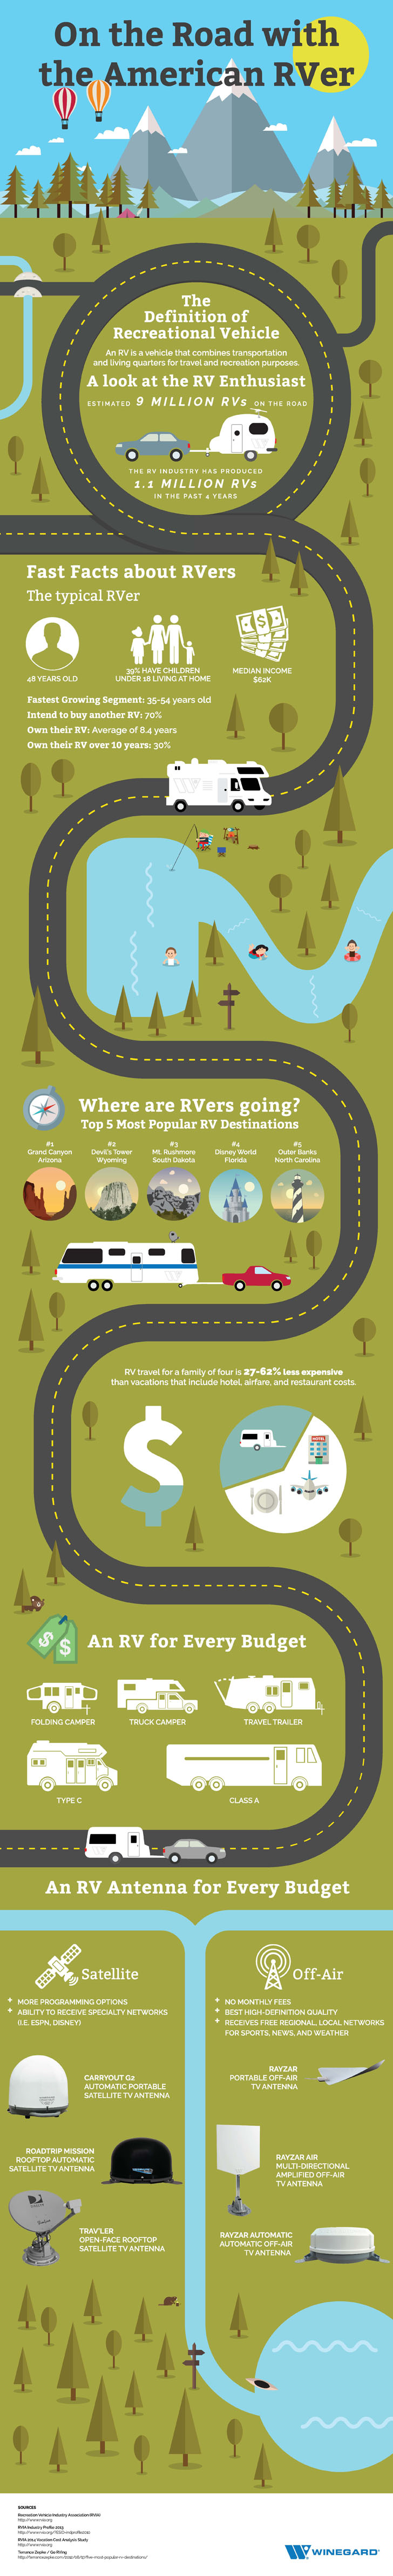 Winegard RV infographic